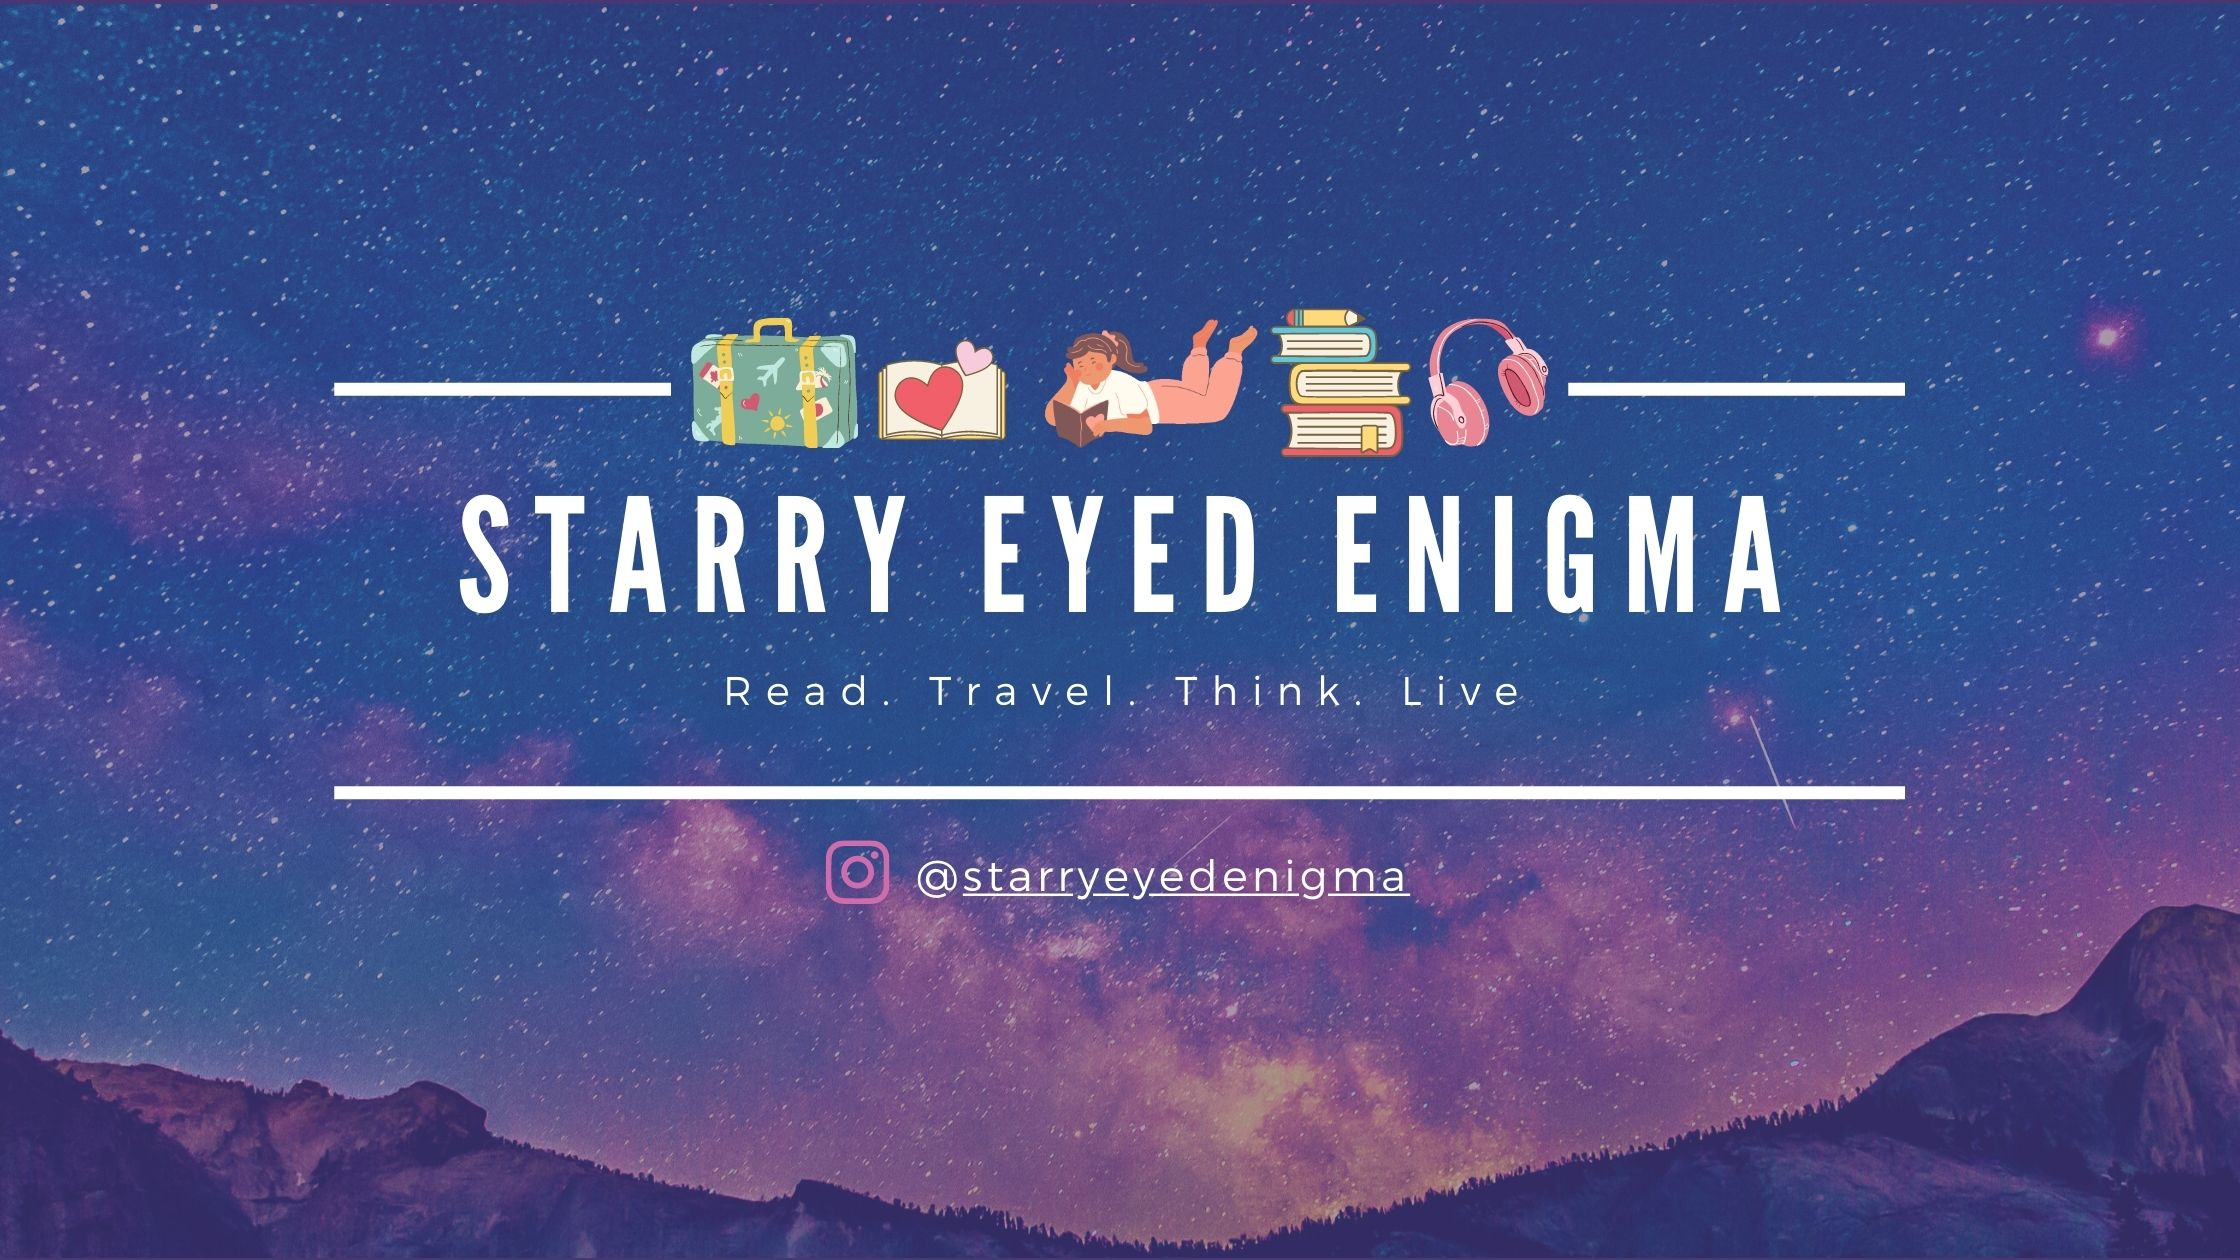 Starry Eyed Enigma